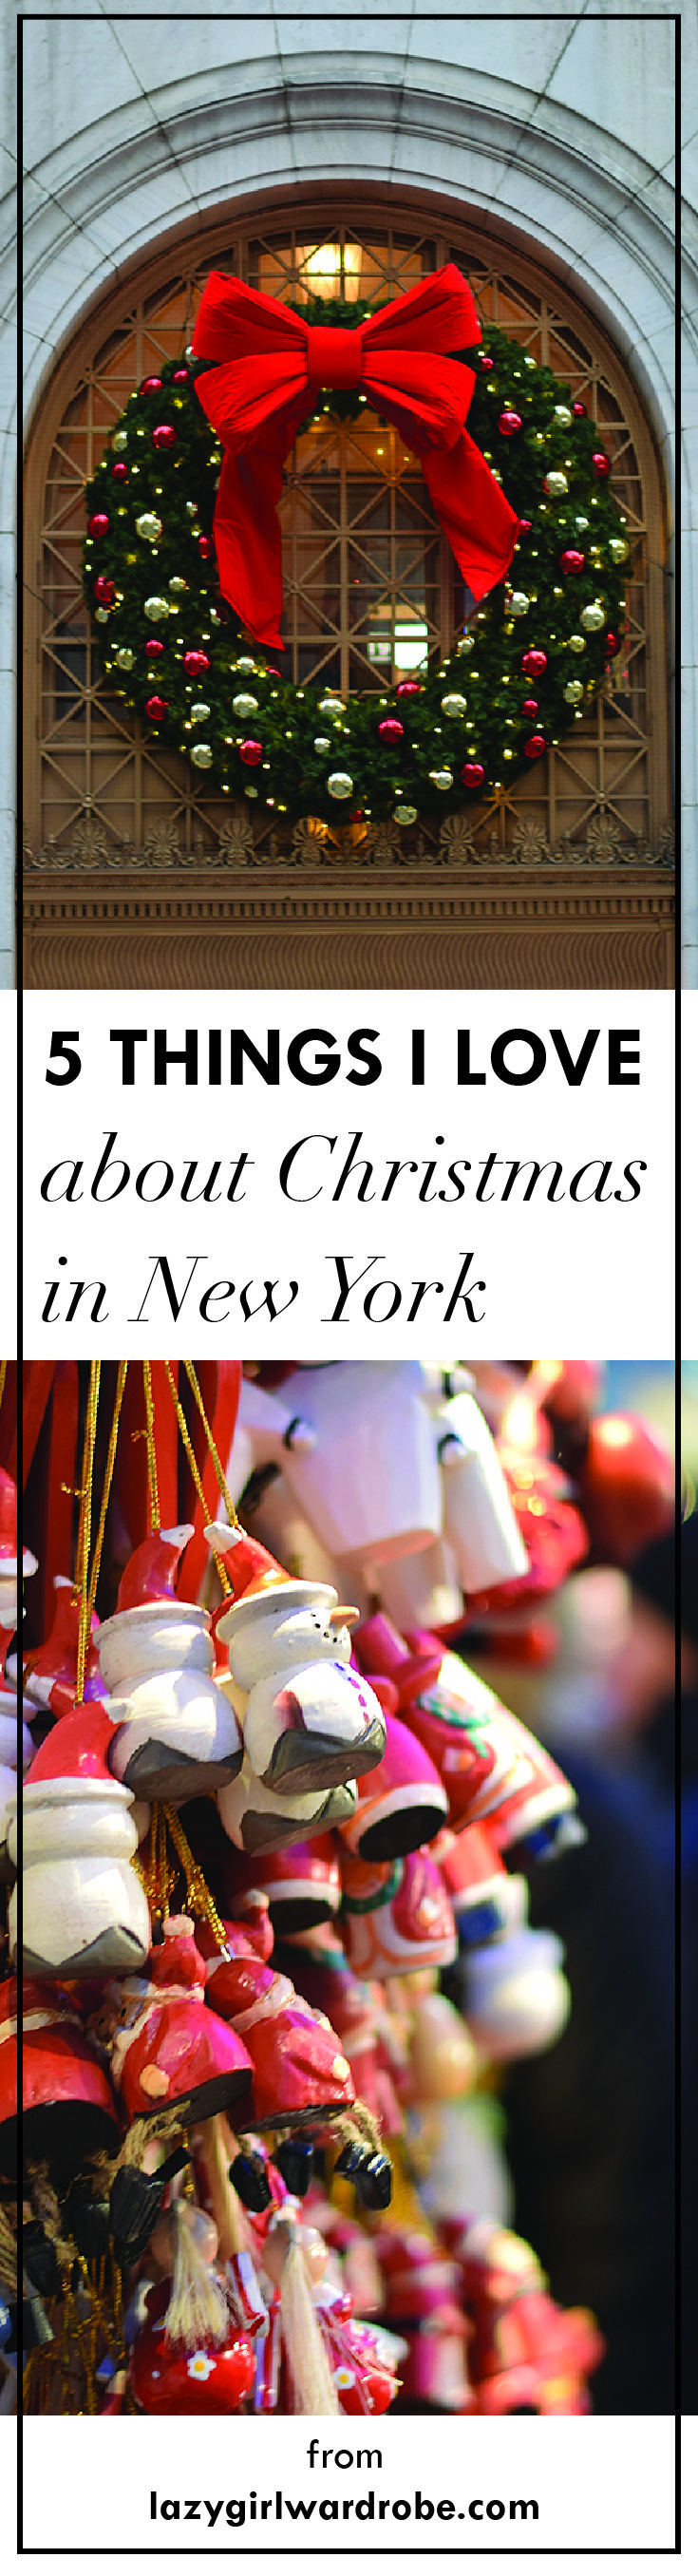 My 5 favourite things about Christmas in New York! Check it out!